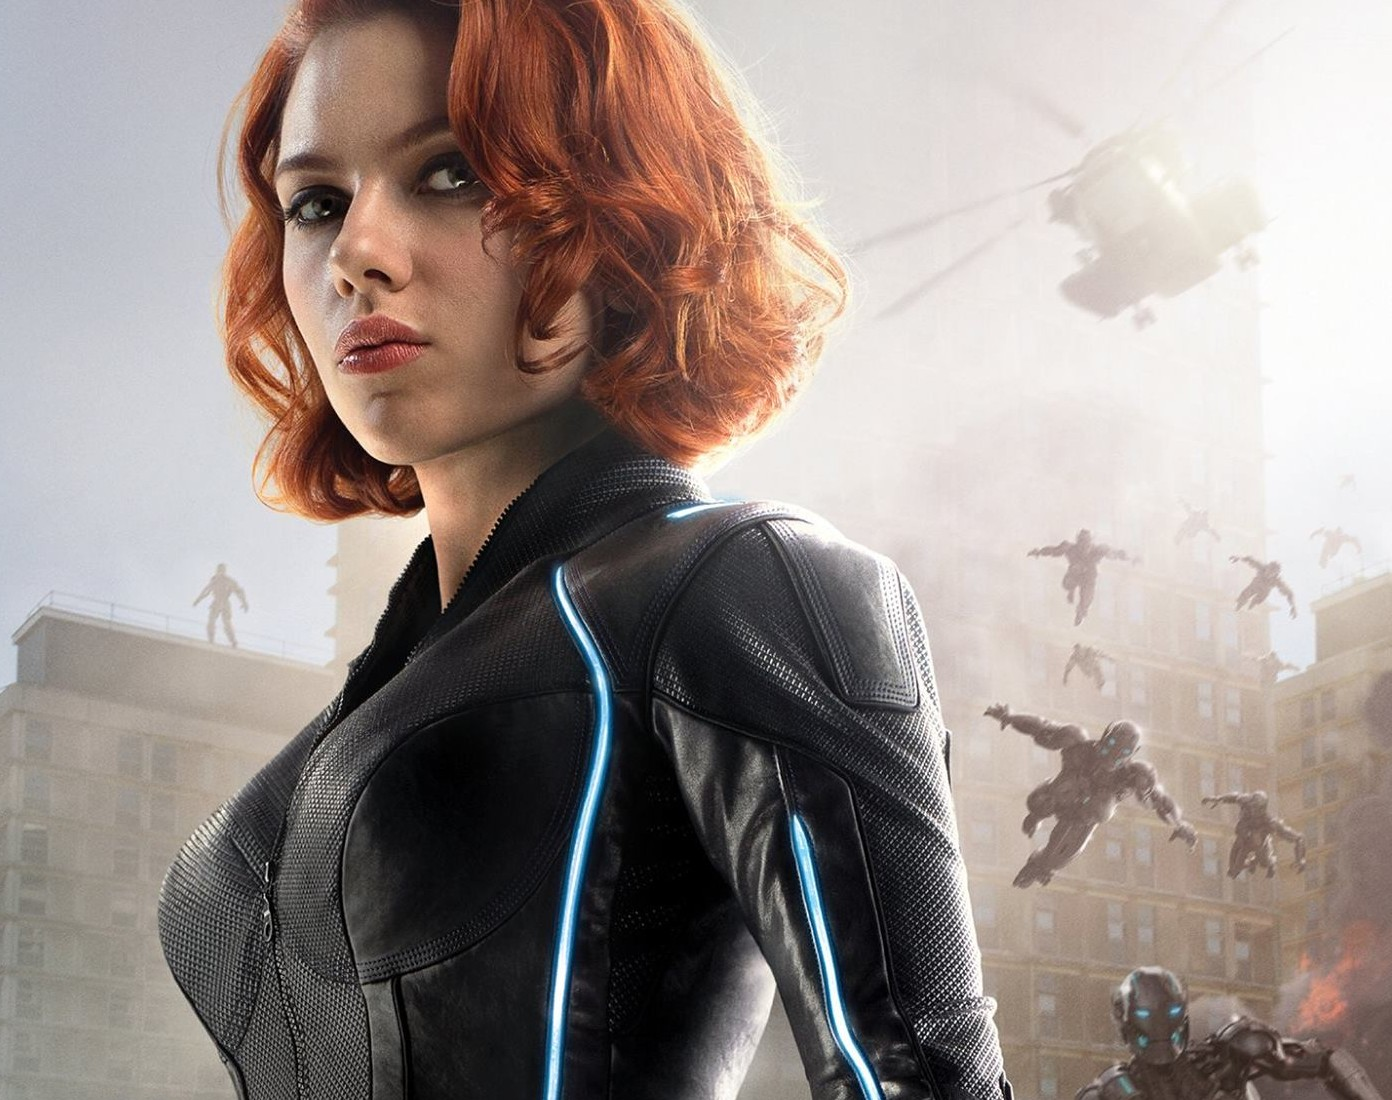 #WheresBlackWidow is the awesome (important!) campaign to get a girl on 'Avengers' merch